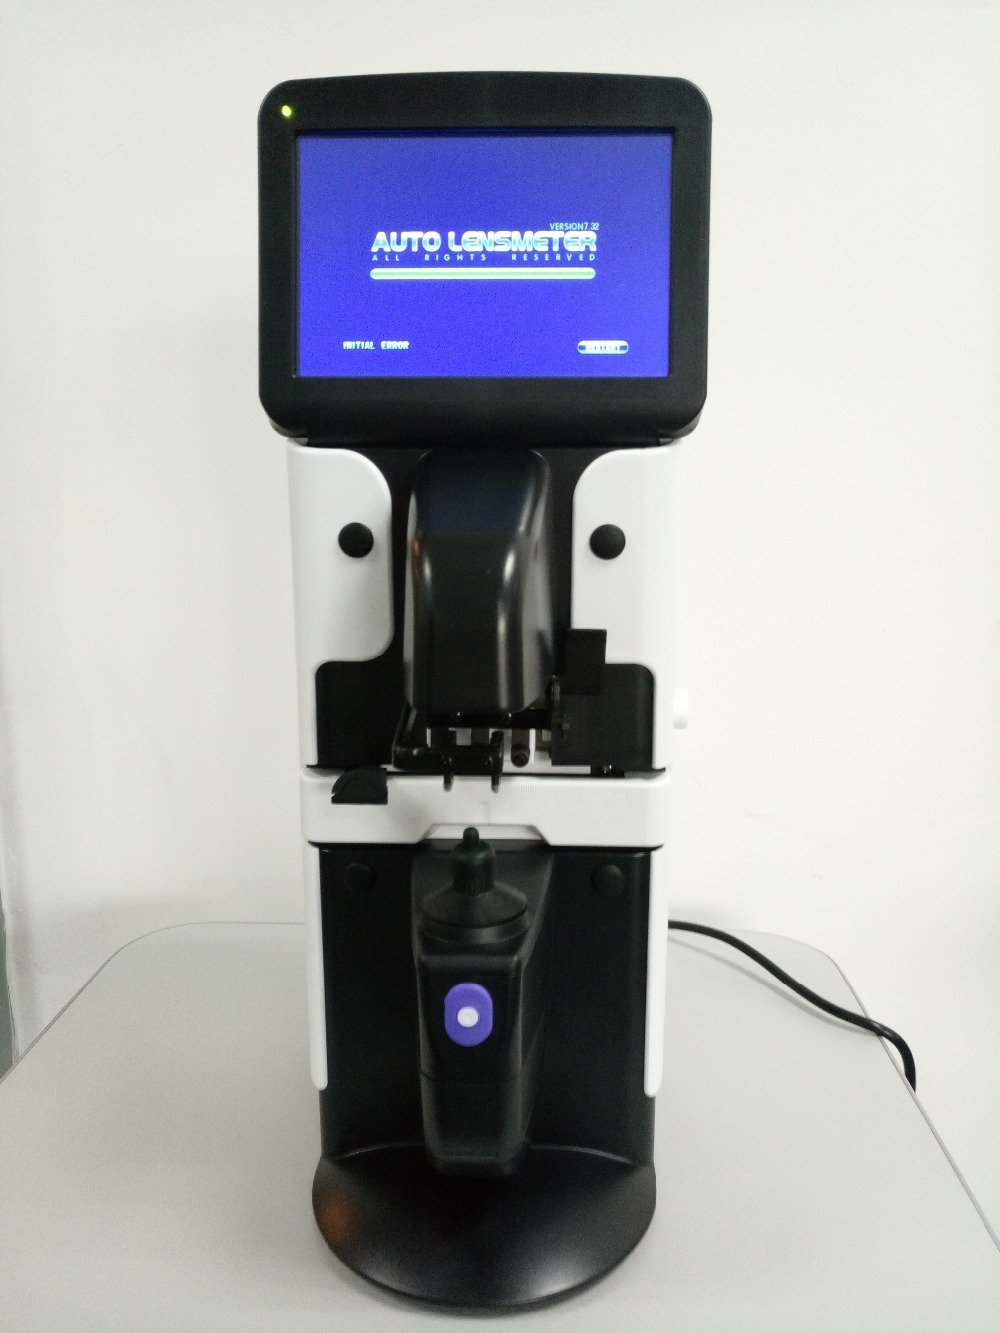 Auto Lensmeter Digital Automatic Registered in FDA 7'' LCD Touch Screen Accurate Measurement PD, UV, and Printer function